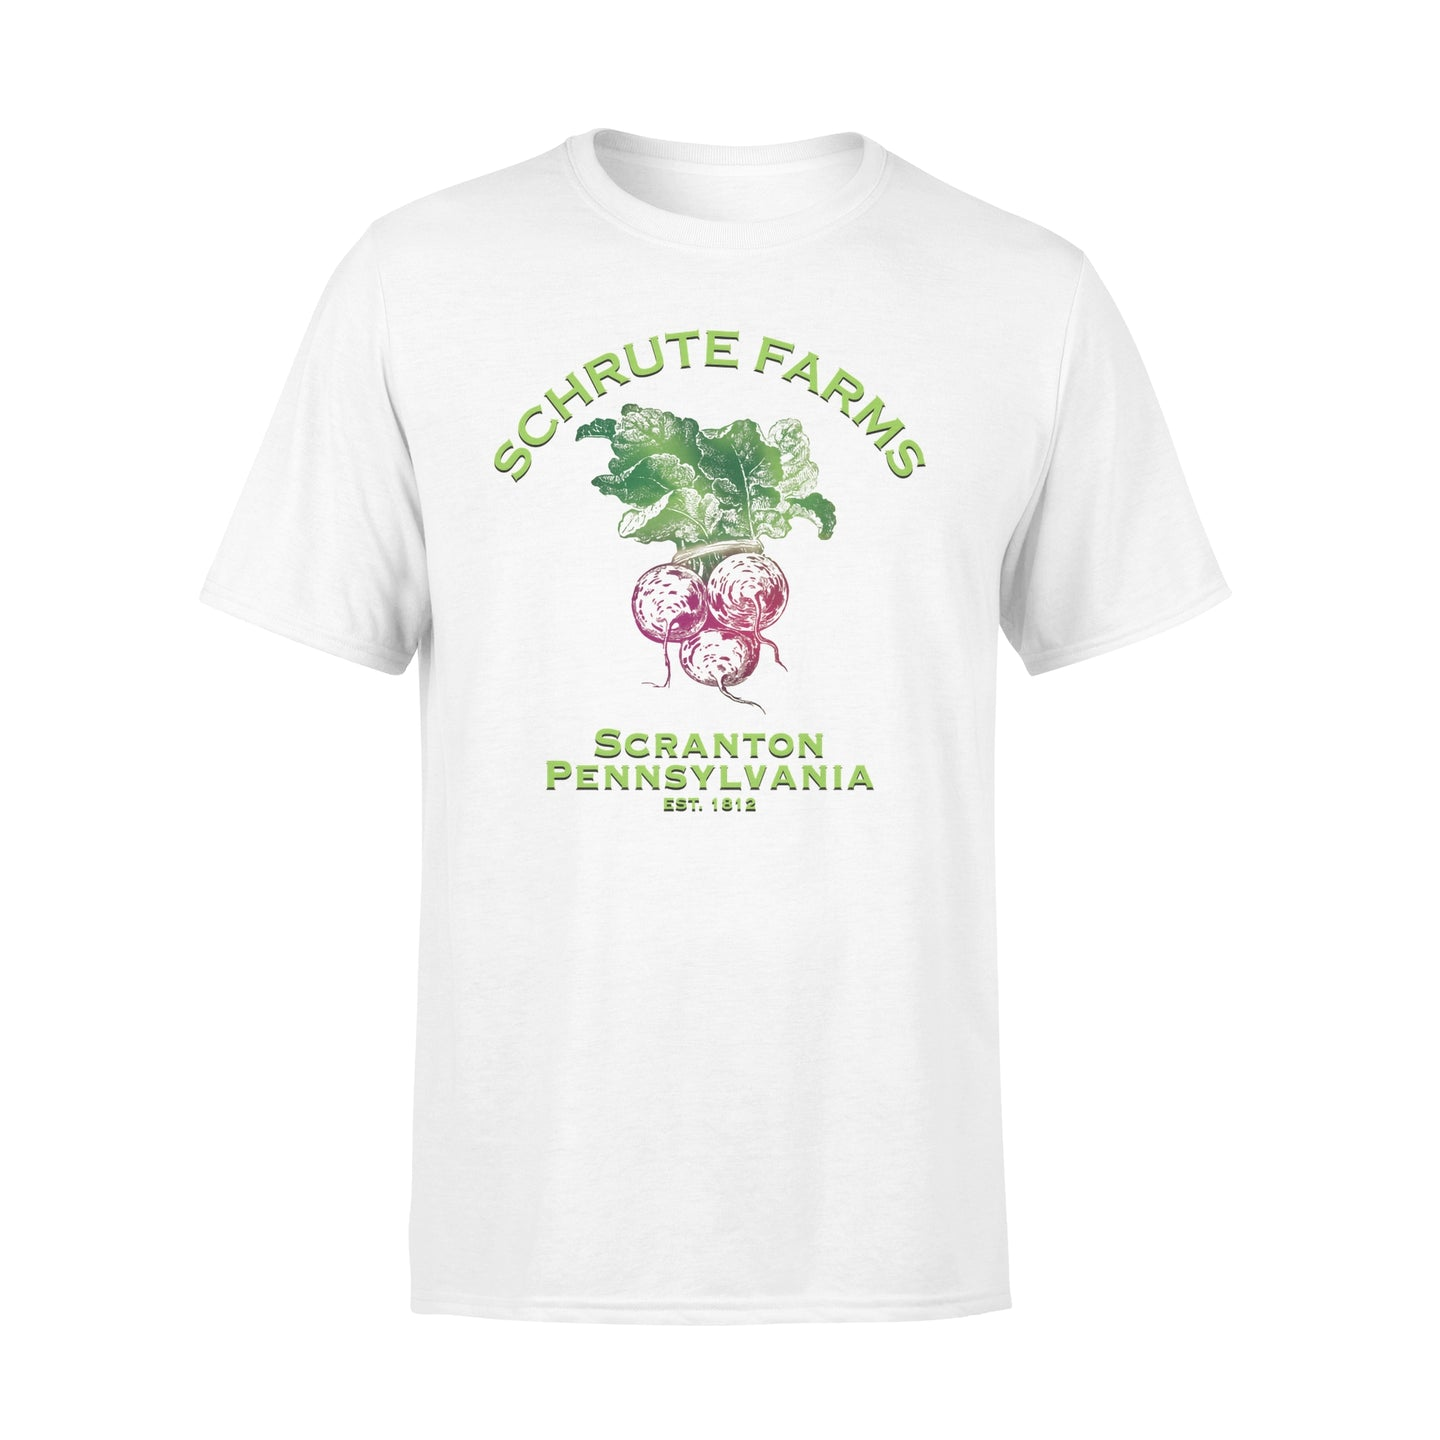 FOAL14 The Office T-Shirt, S. Farms, Adult Unisex, Size XS-4XL